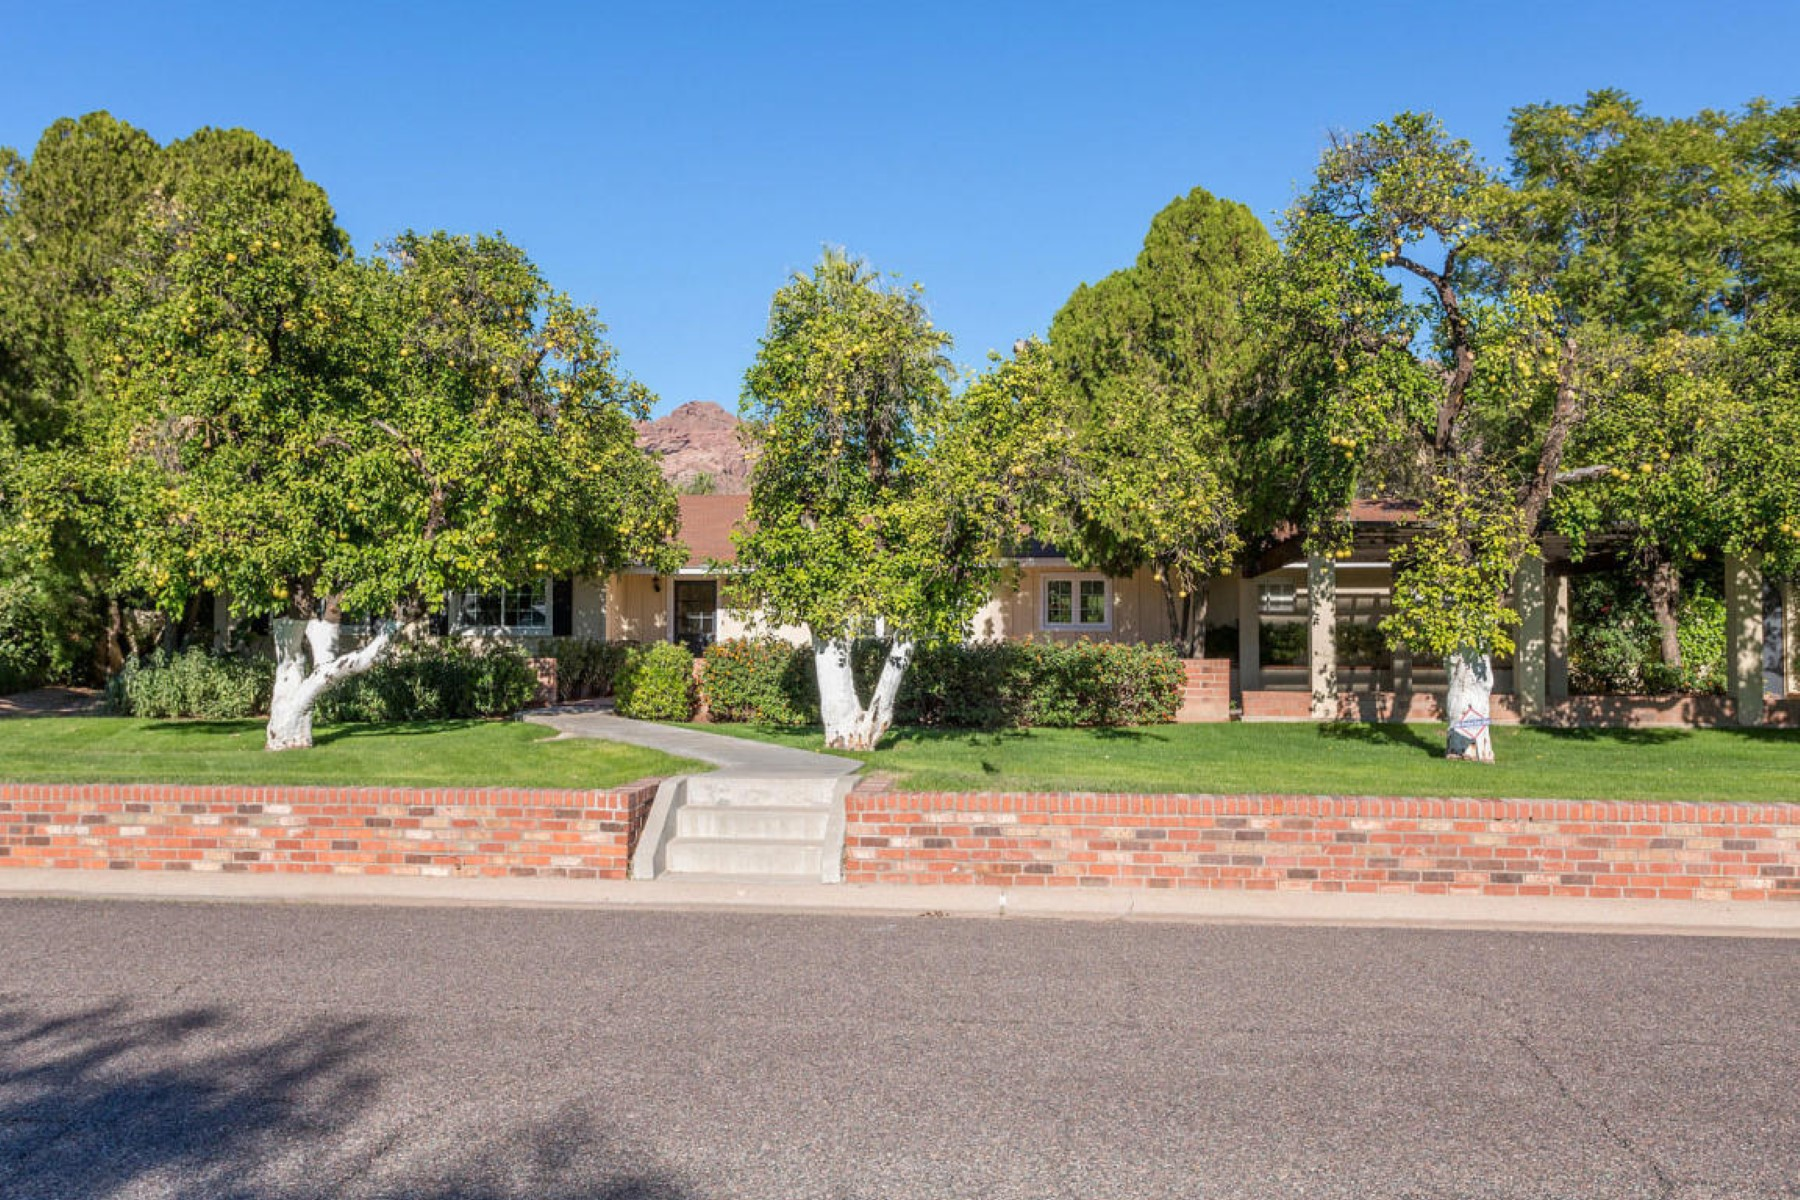 Property For Sale at Charming 1957 Arcadia home with many upgrades